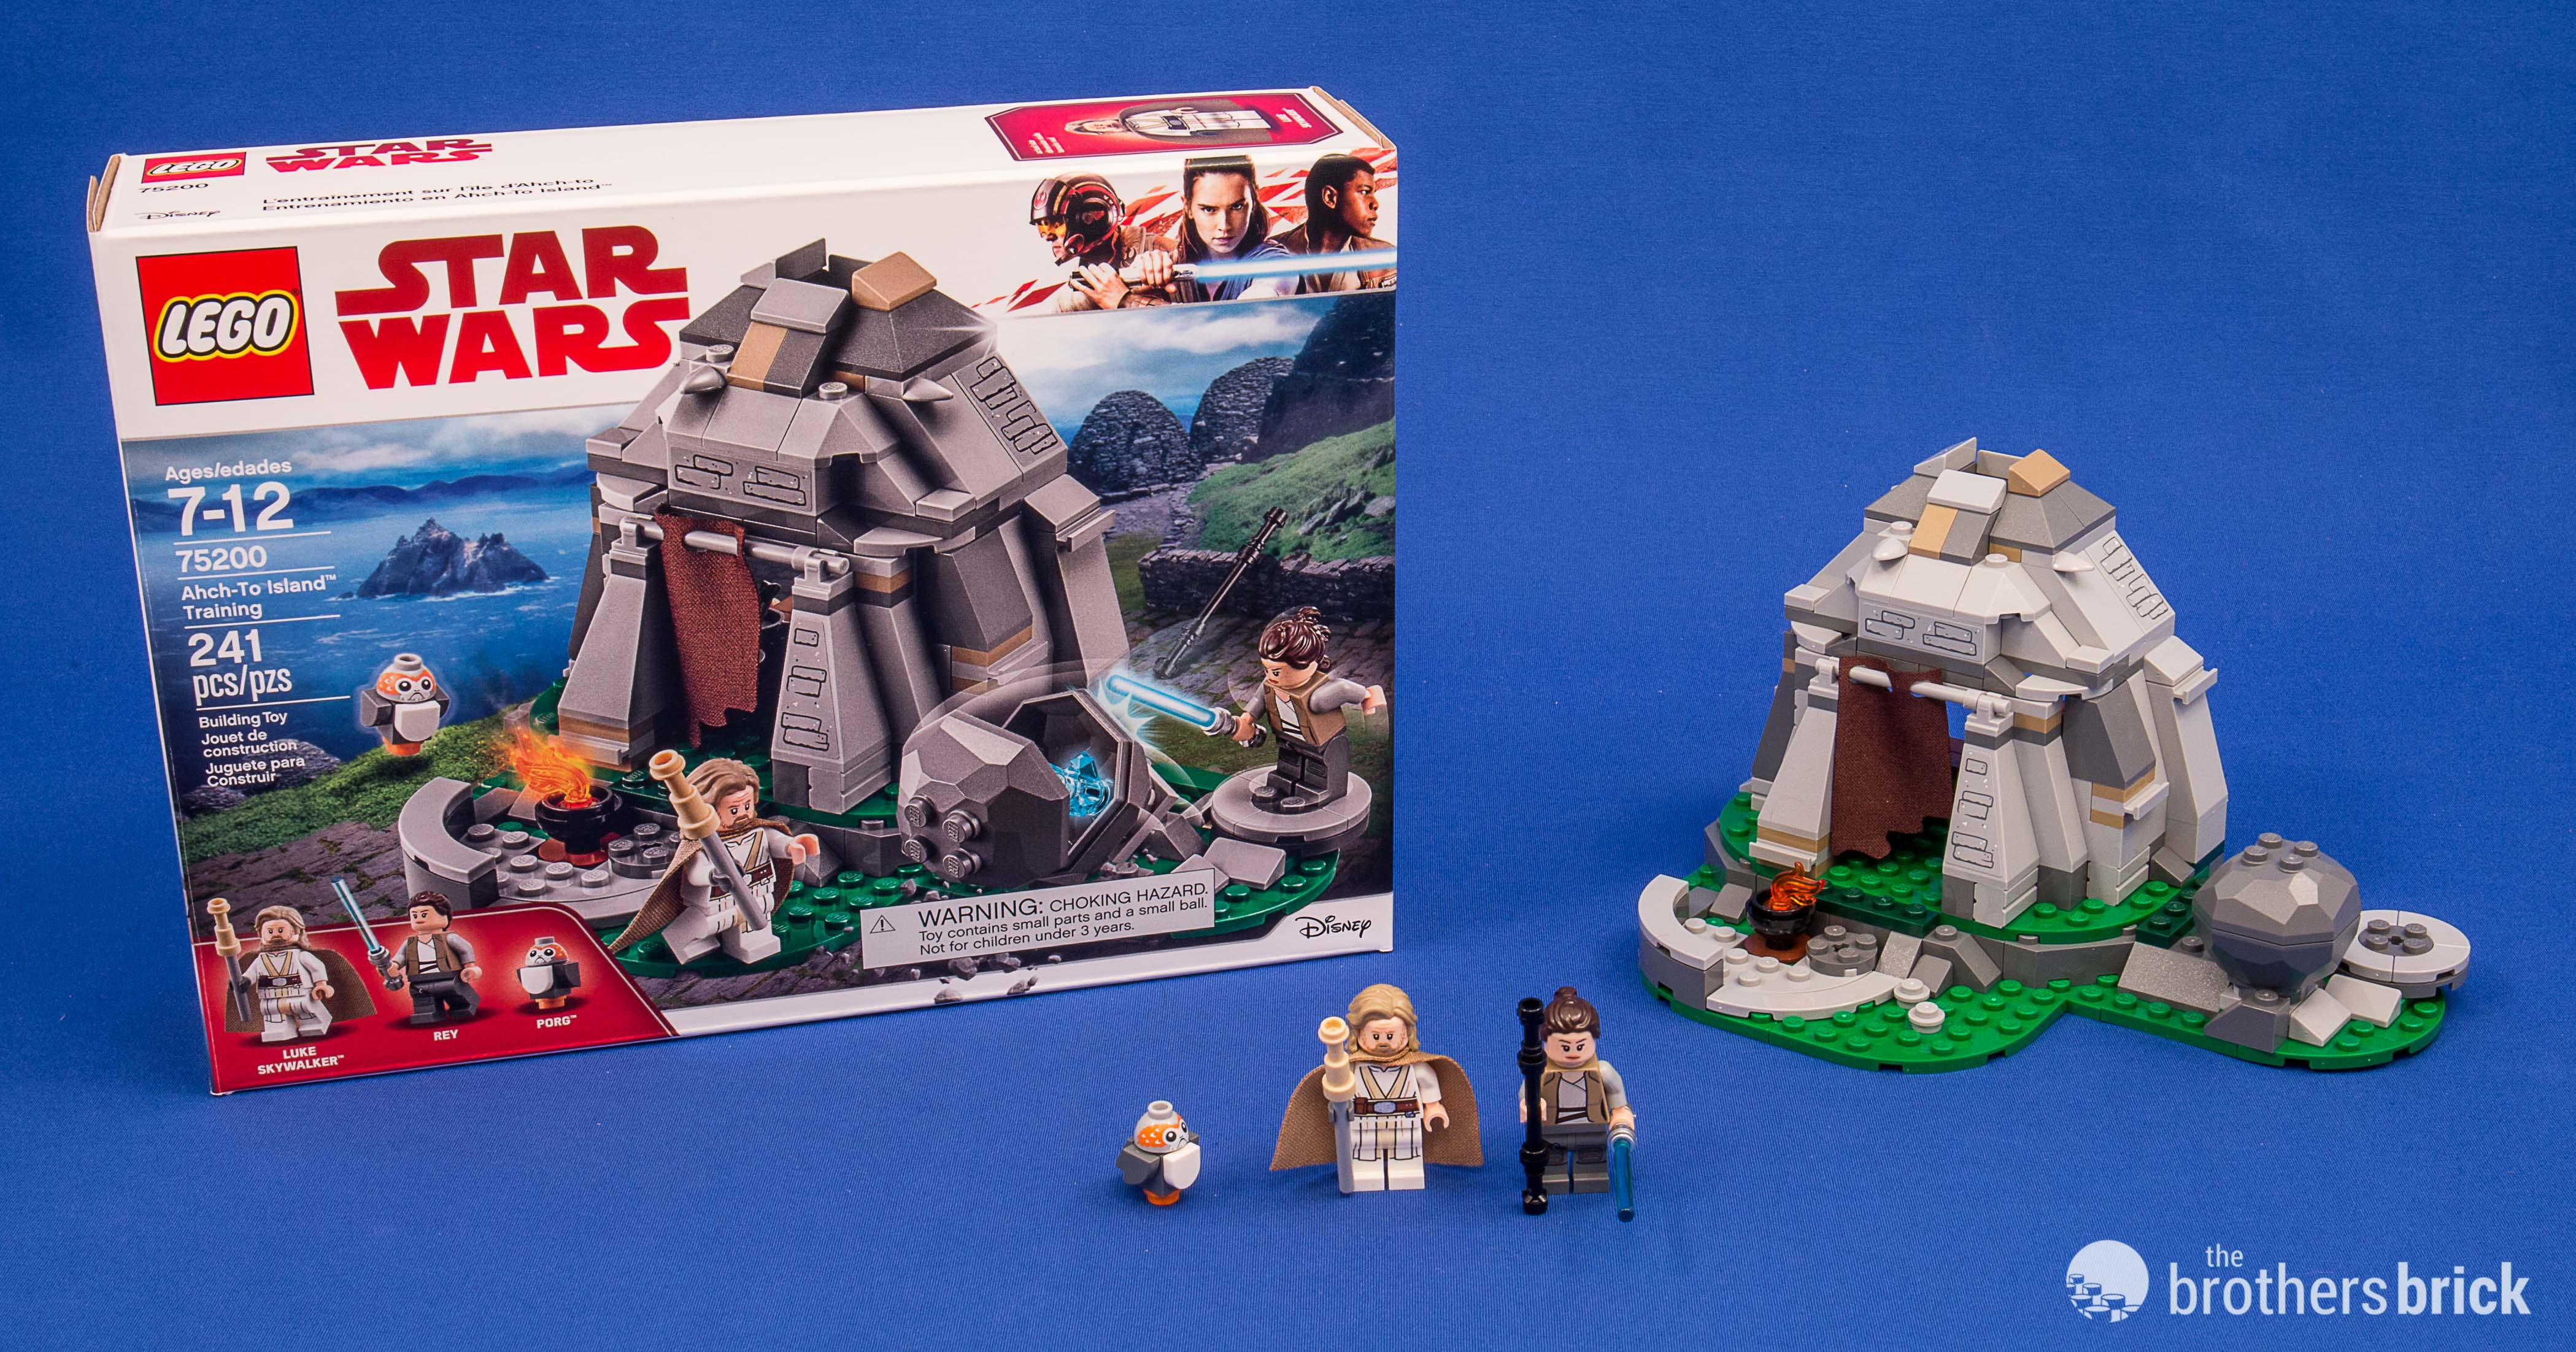 LEGO Star Wars 75200 Ahch-To Island Training 241 pcs Ages 7-12  NEW!